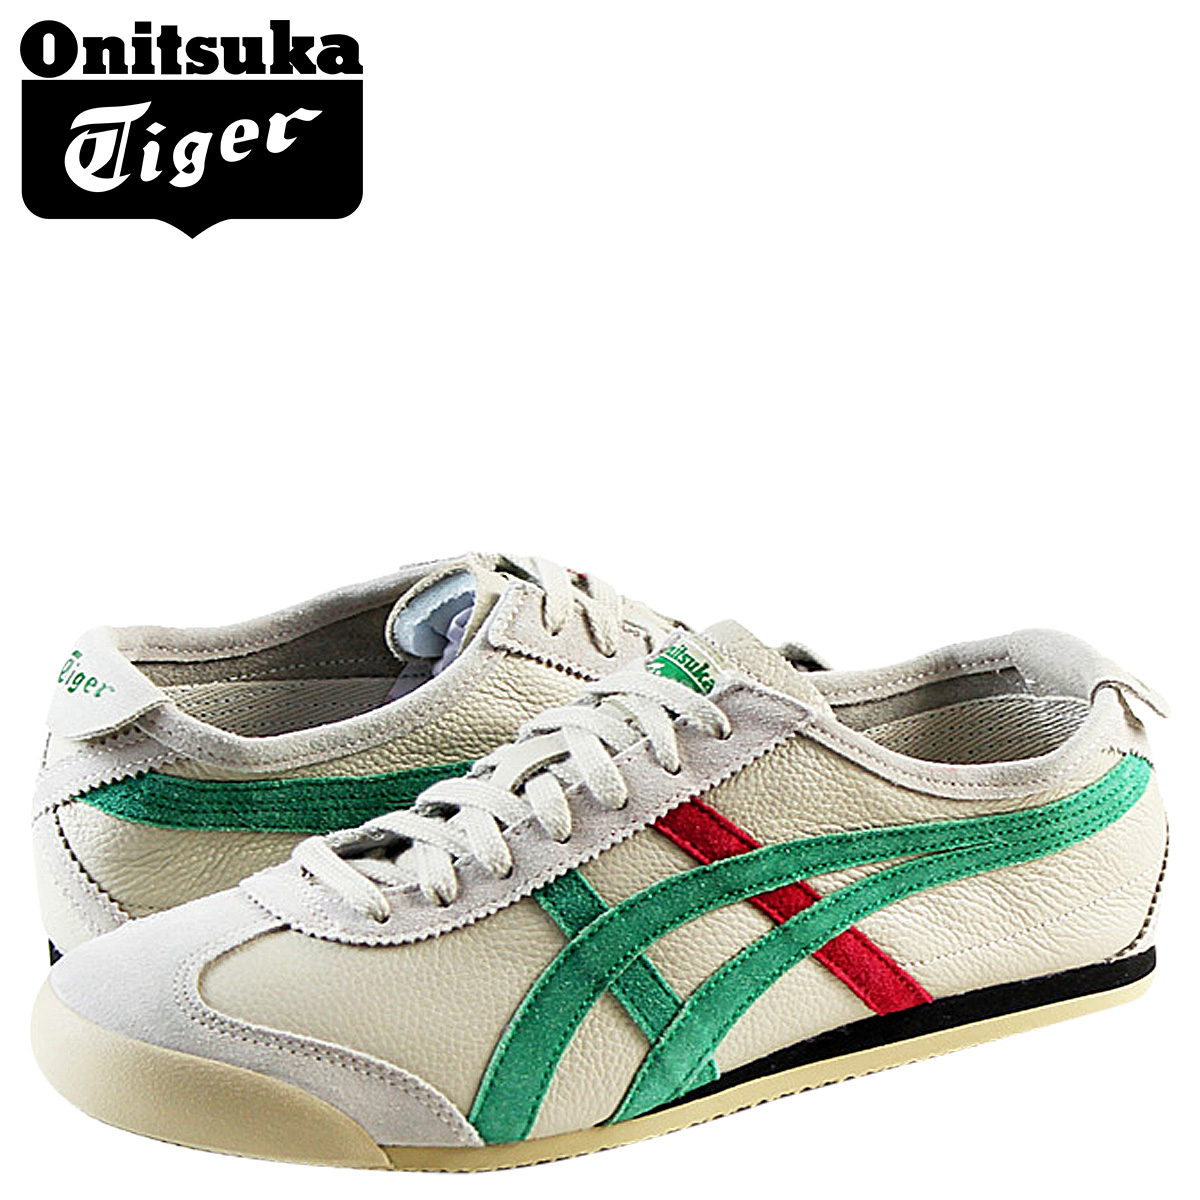 Sugar Online Shop | Rakuten Global Market: Onitsuka Tiger ASICs Onitsuka  Tiger asics sneakers D2J 4L-0584 MEXICO 66 VINTAGE LEATHER leather men's  Mexico 66 ...